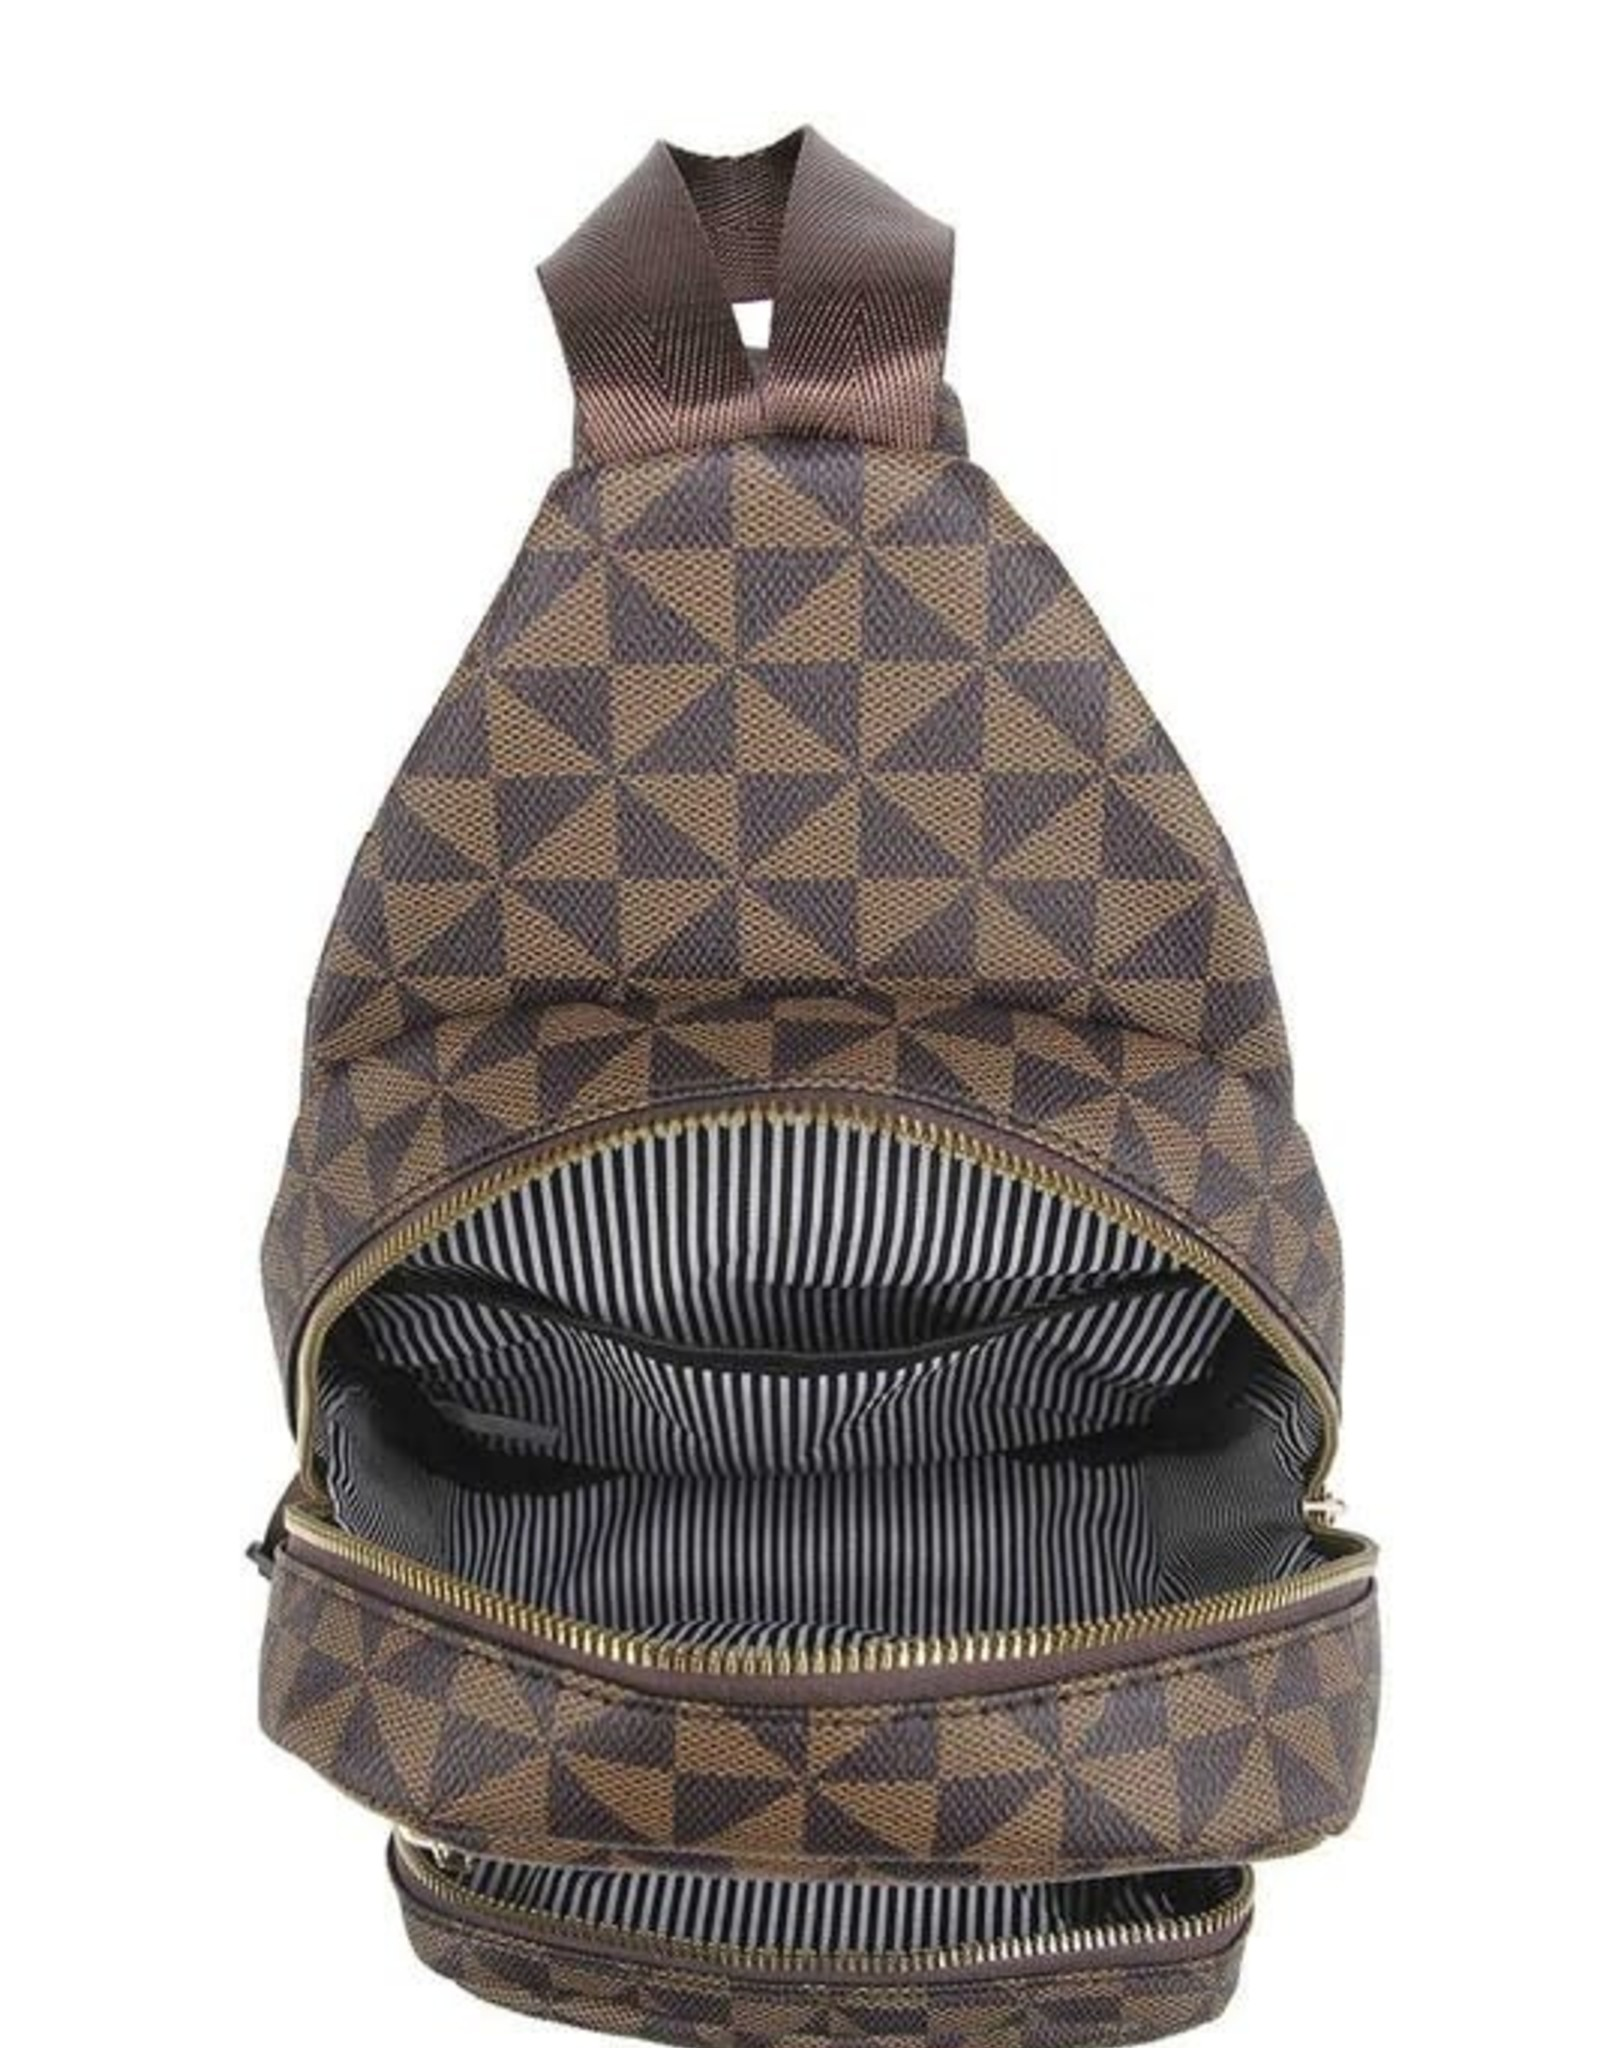 Monogram One Shoulder Backpack